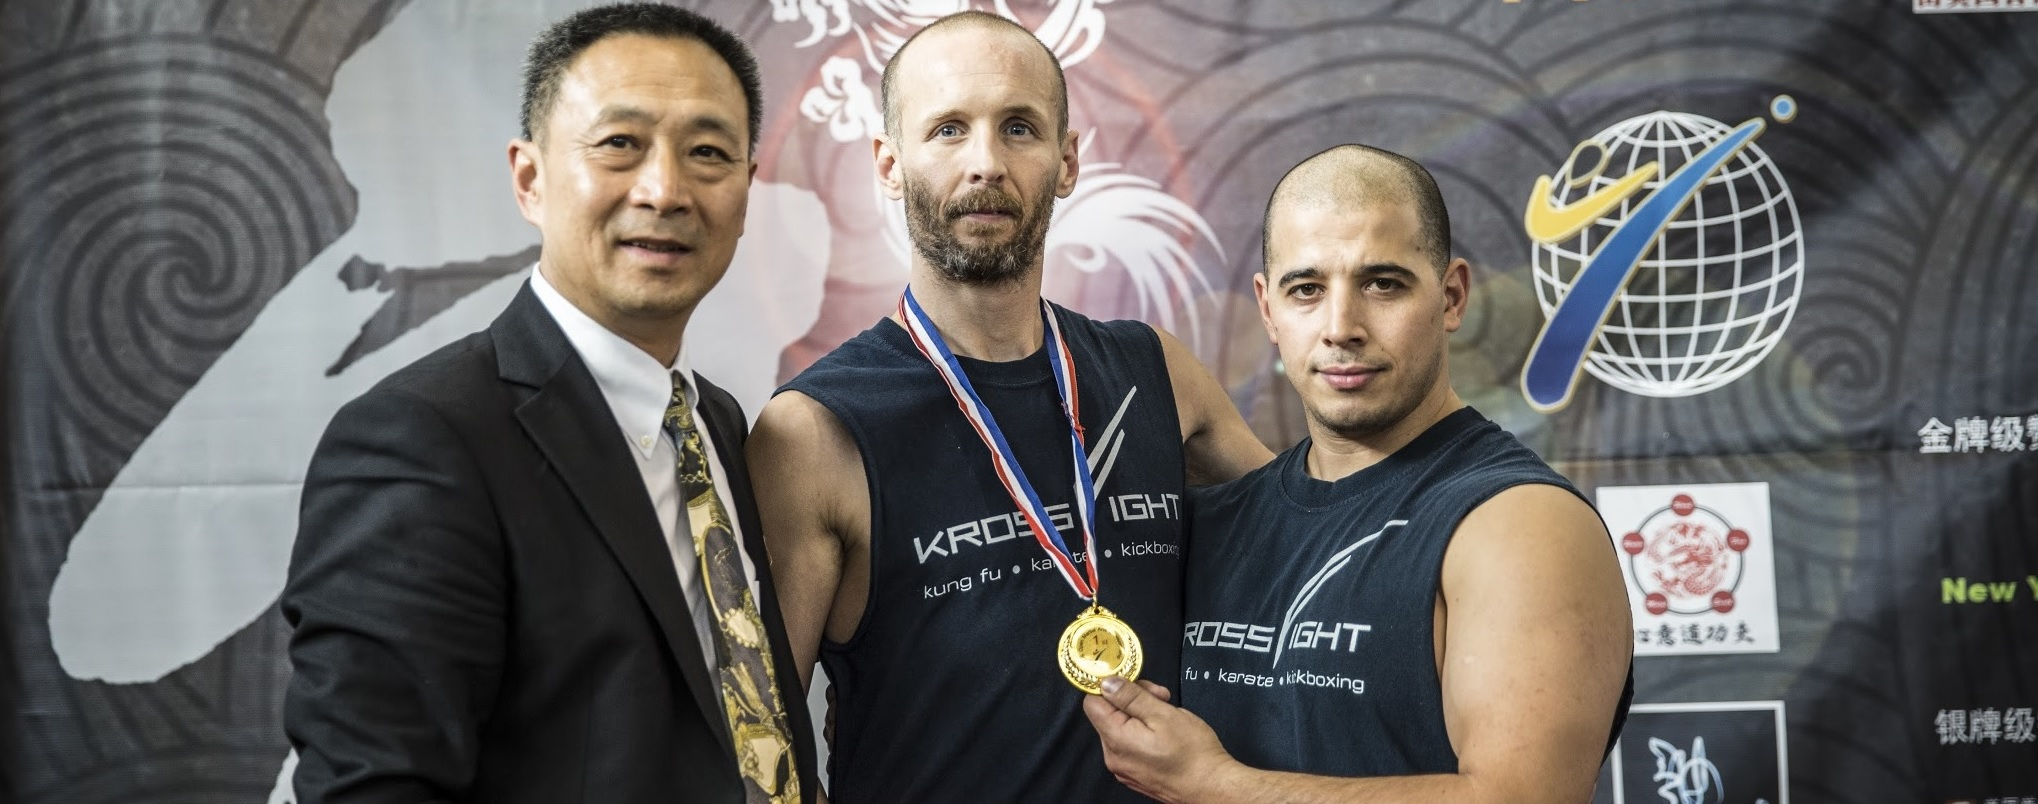 Medal award presented by the WFMAF's president at the US Open Martial Arts Championship 2015